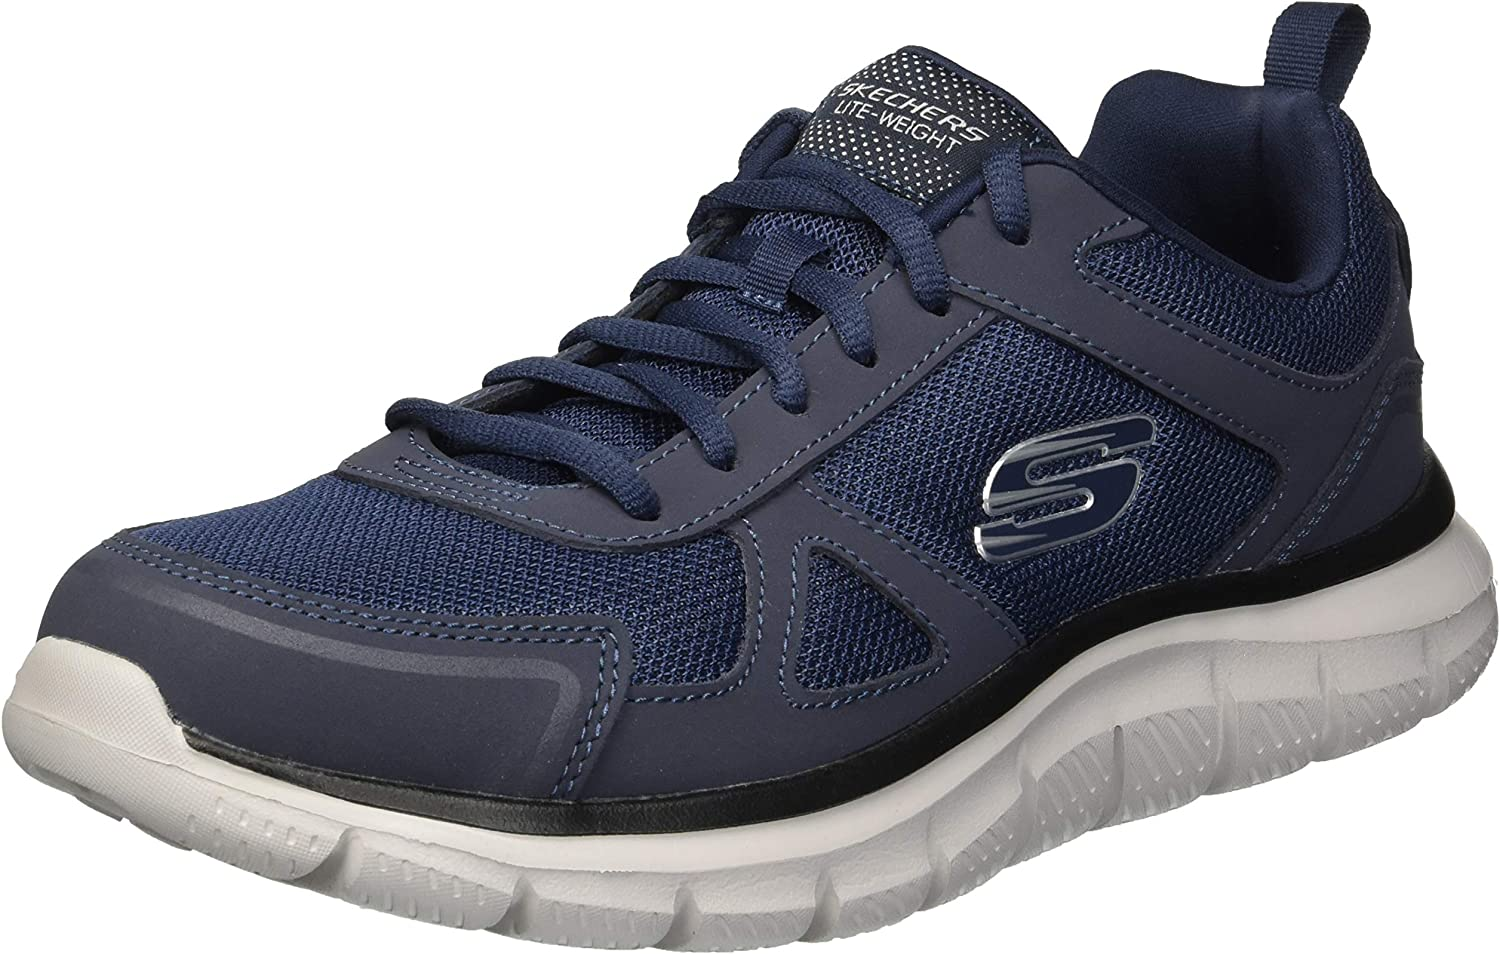 Skechers Men's Track-scloric 52631-bbk Low-Top Sneakers